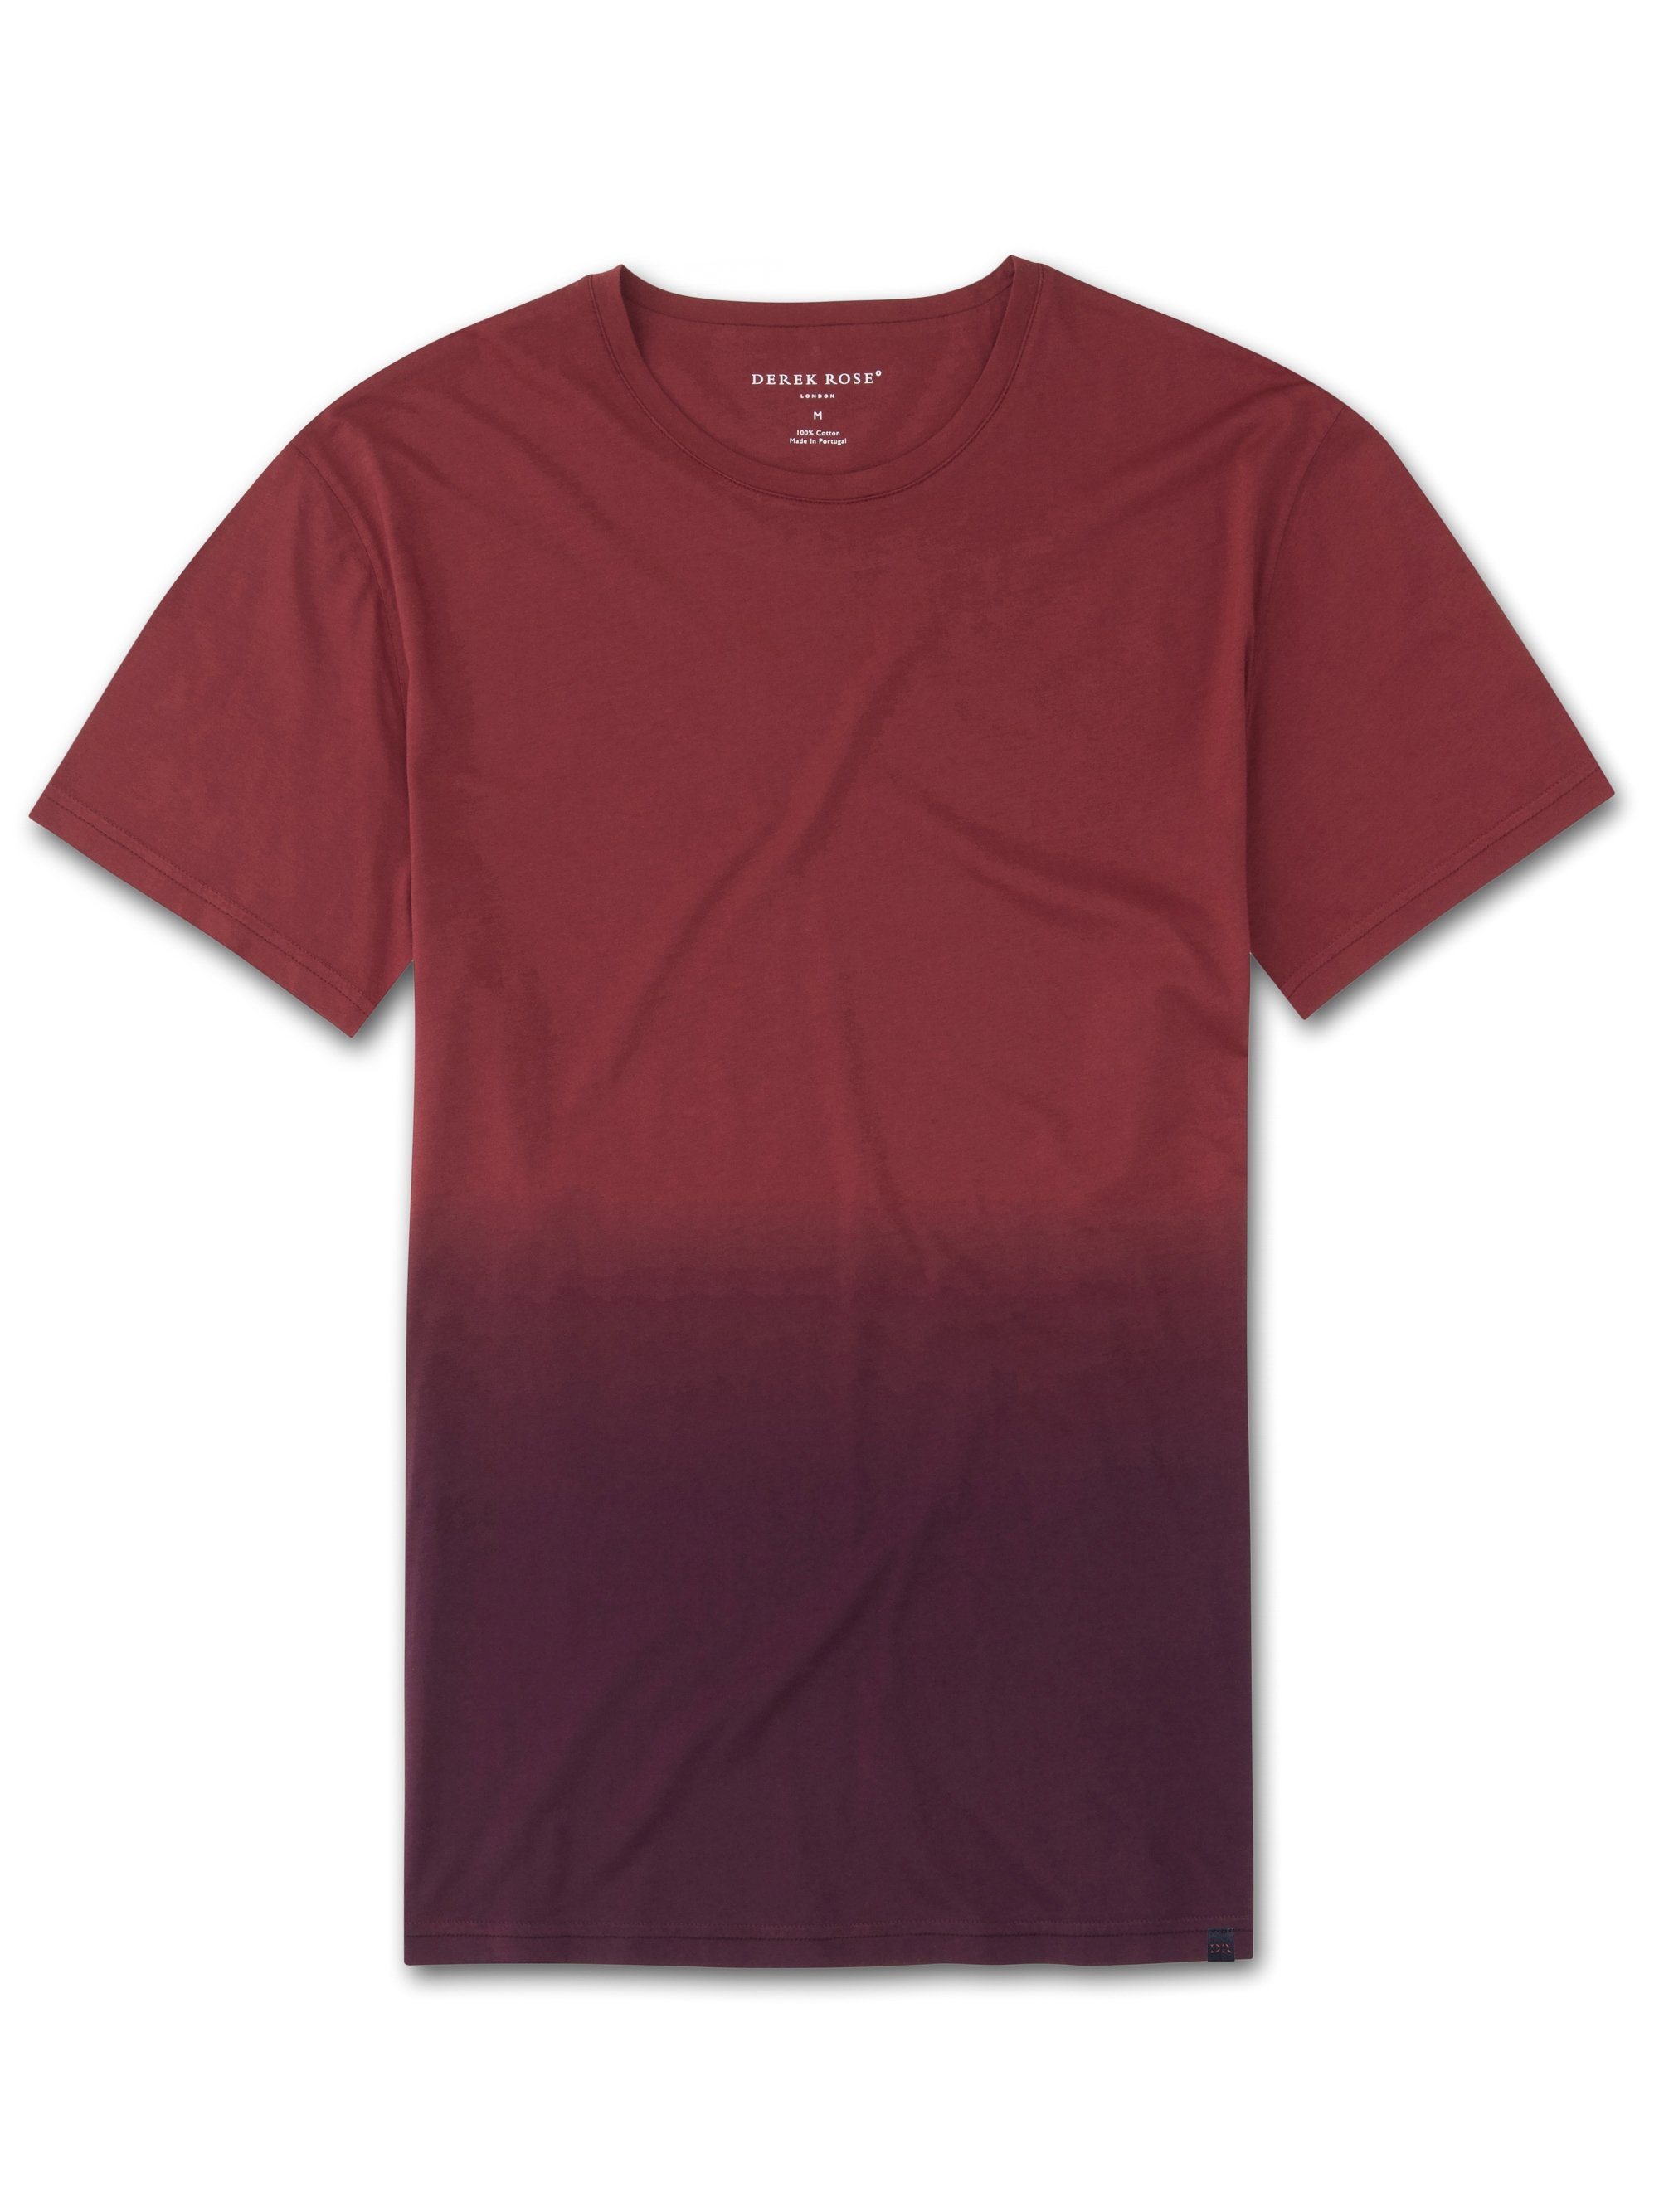 Men's Short Sleeve T-Shirt Rufus Pima Cotton Red